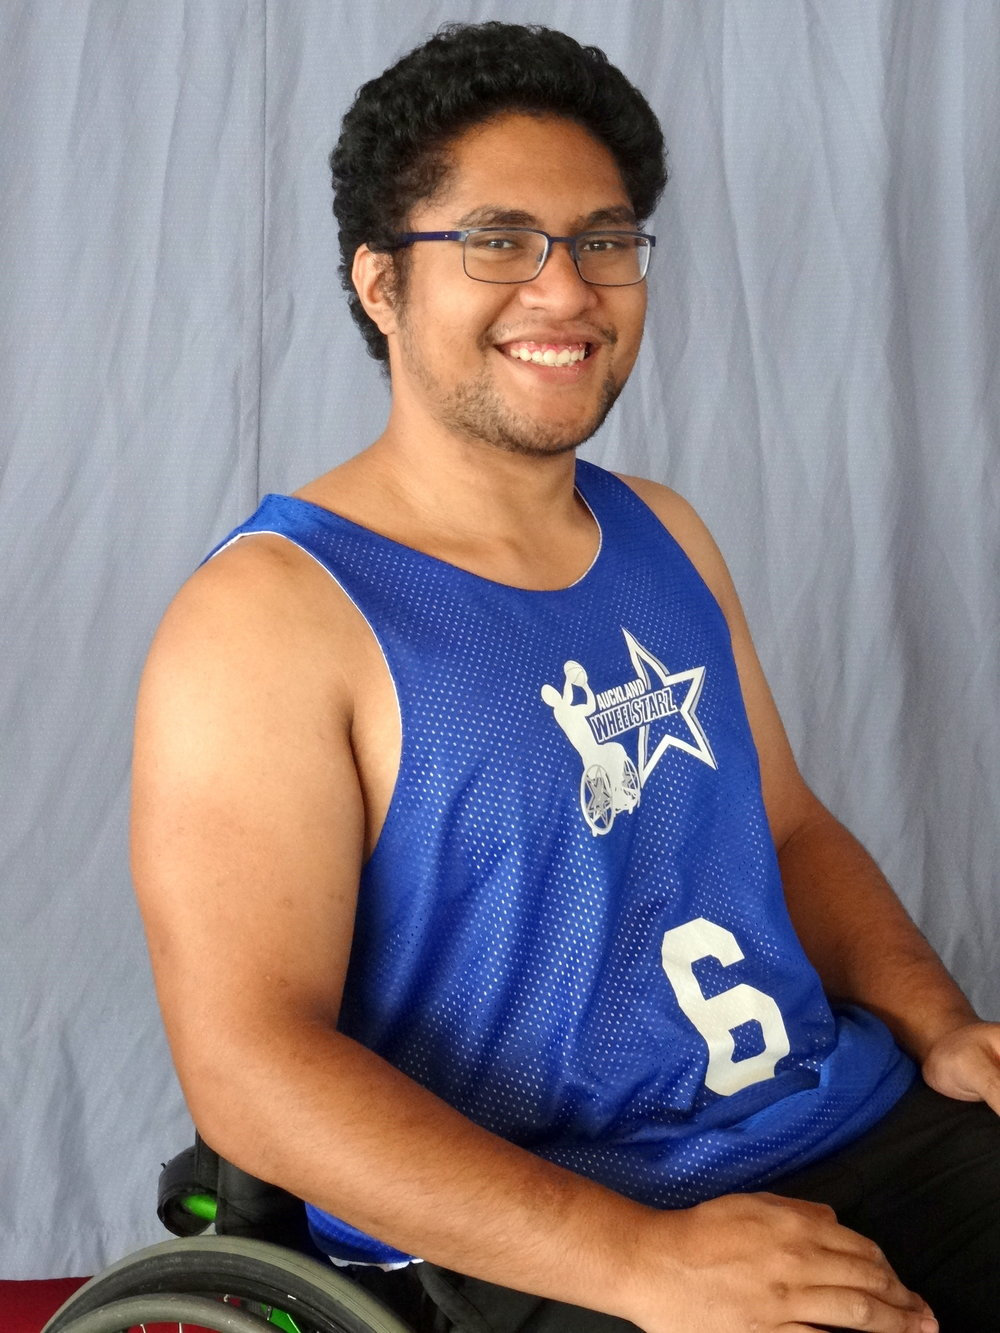 Josh Fuimaono - At 23 years old and I have Congenital Cerebral Palsy.I have played wheelchair basketball for the past 10 years and have also had training in wheelchair rugby.  Coming from a family dedicated to sport and physical prowess, I found it hard to fit in, until I found wheelchair basketball.I was introduced to the sport by an occupational therapist during high school and found that this sport allowed me to be looked at as an equal in my family, kept me fit and active, and has taught me a lot of transferable skills and tactics.I have played for the WheelStarz for the past 3 seasons and now I hold the position of Assistant Coach were I have been given this amazing opportunity to teach younger athletes what I know and help them develop into skilled, confident and successful players.